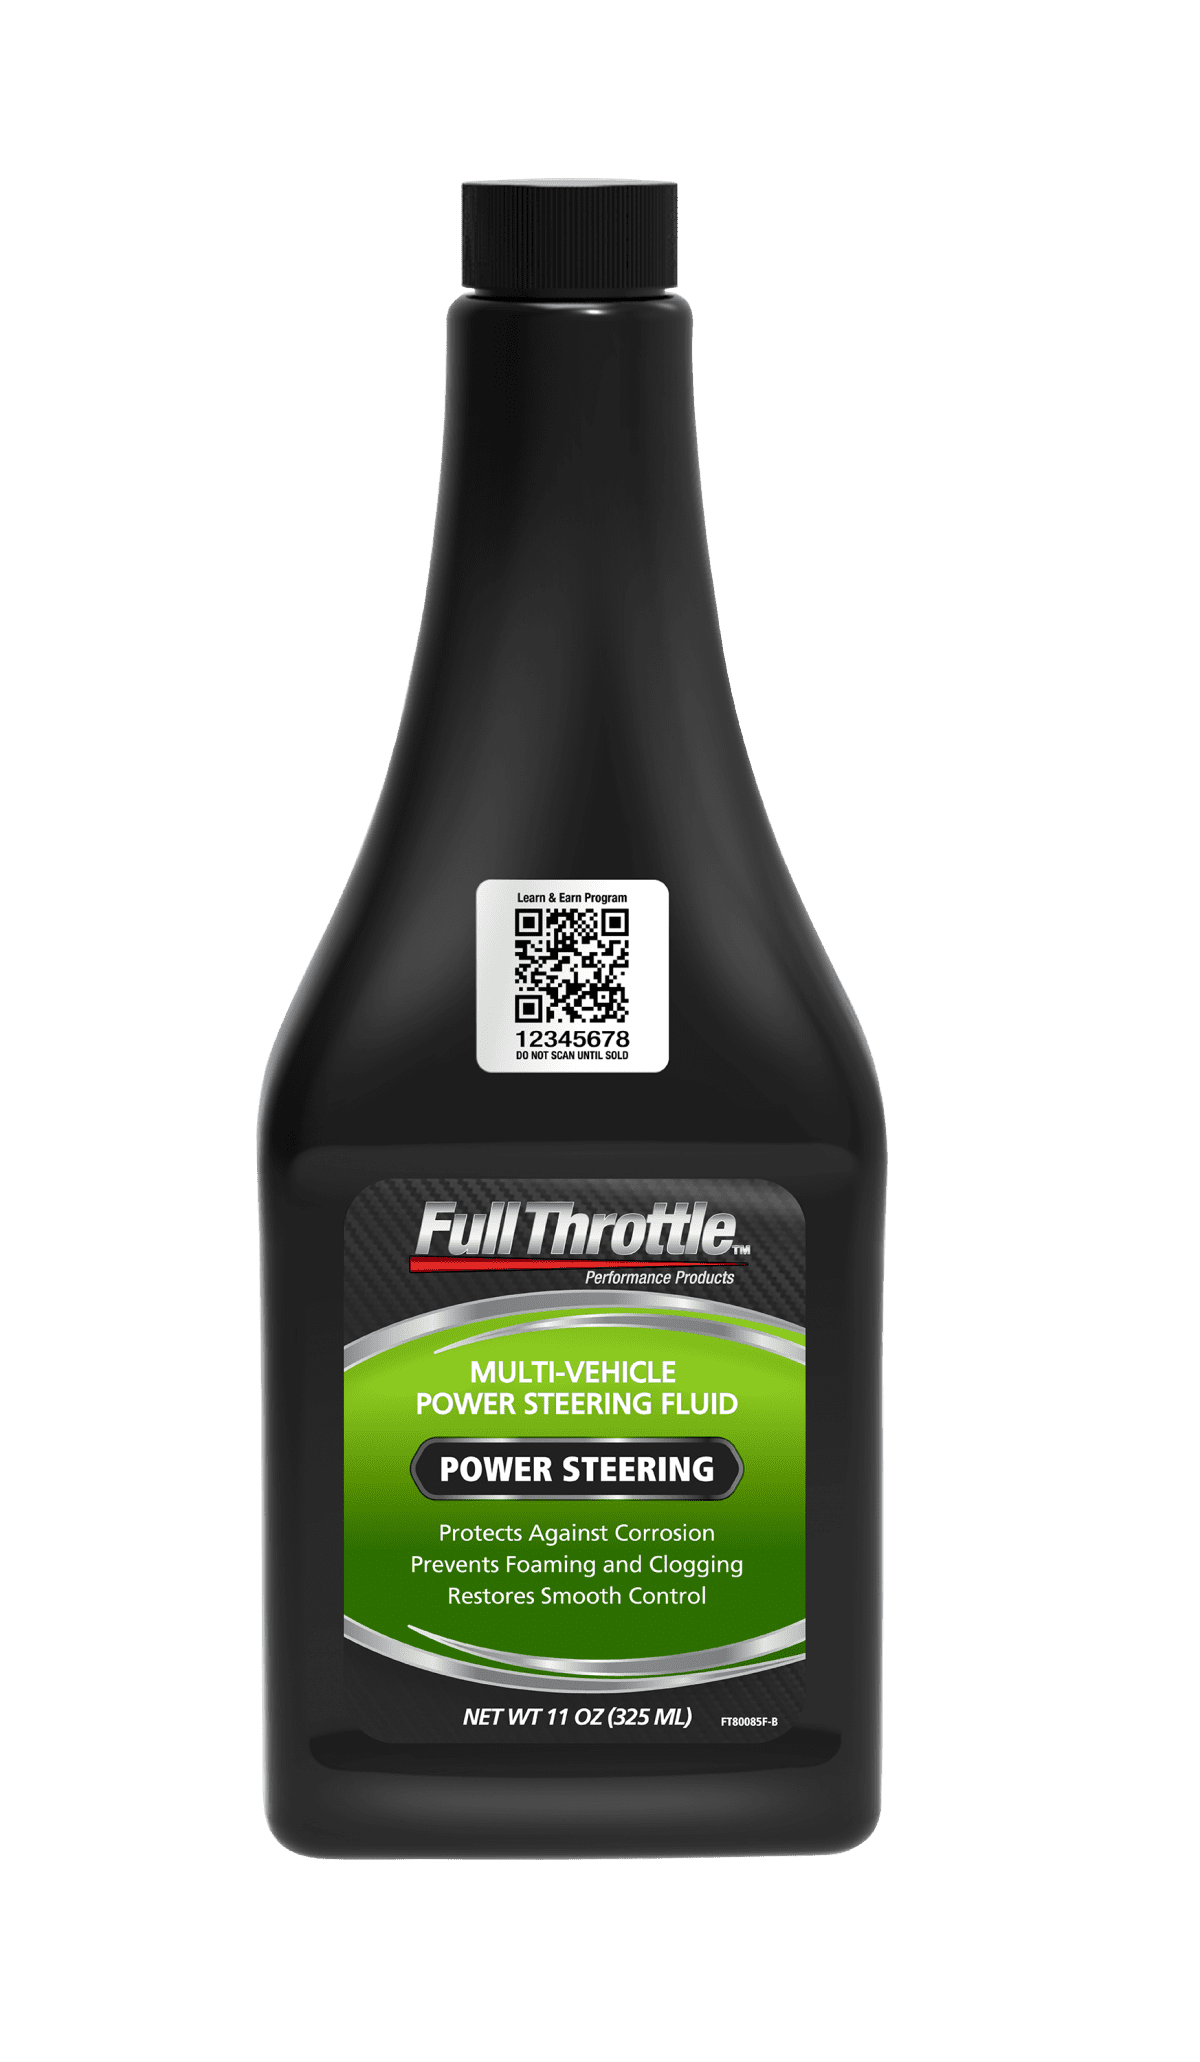 FT80085 Full Throttle MULTI-VEHICLE POWER STEERING FLUID